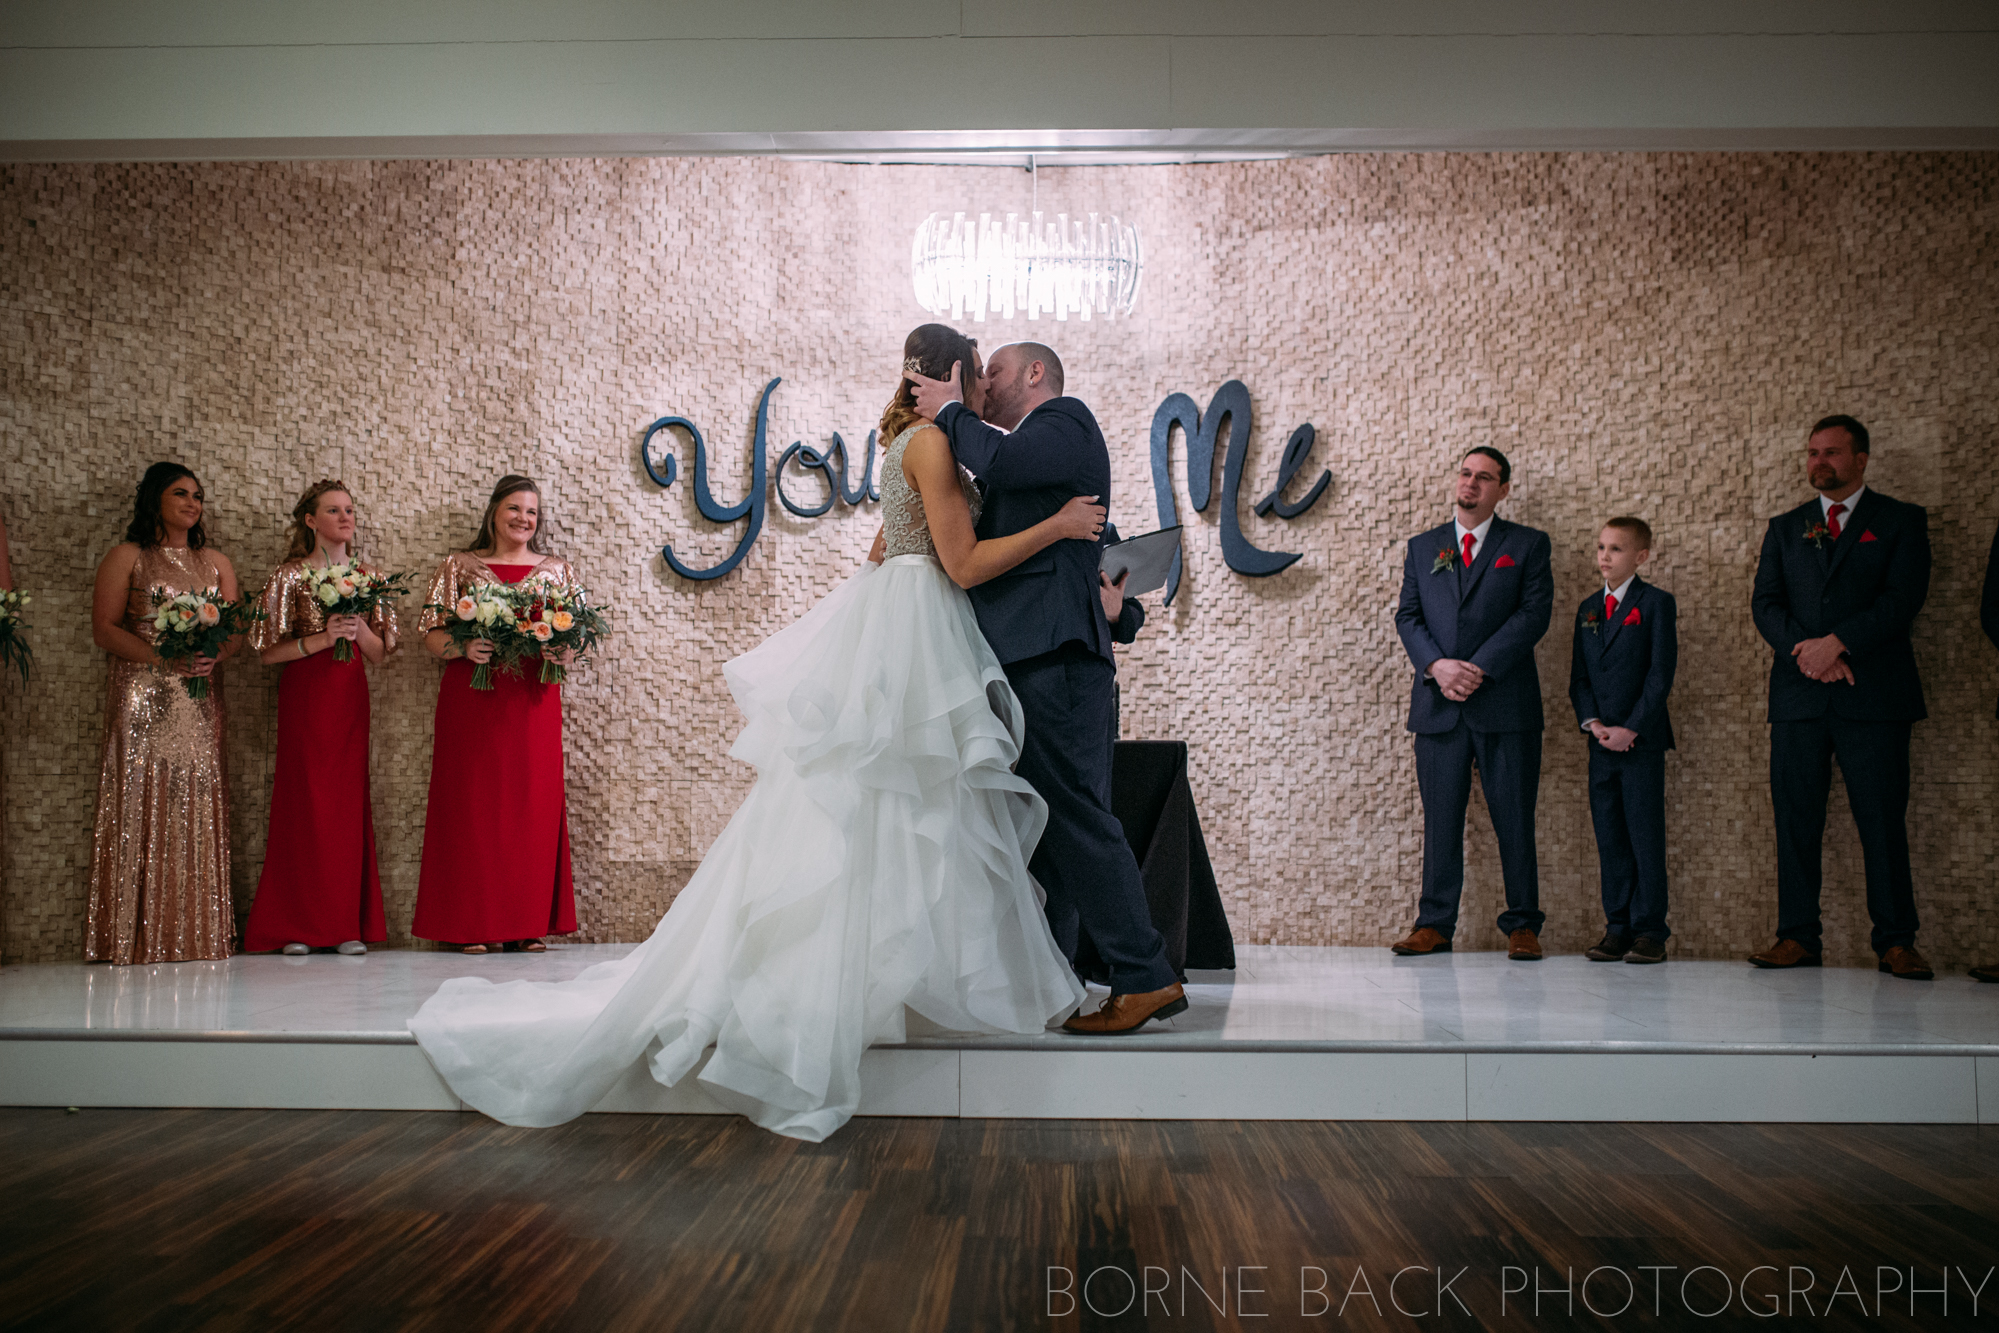 south bend wedding photographer captures first kiss between bride and groom